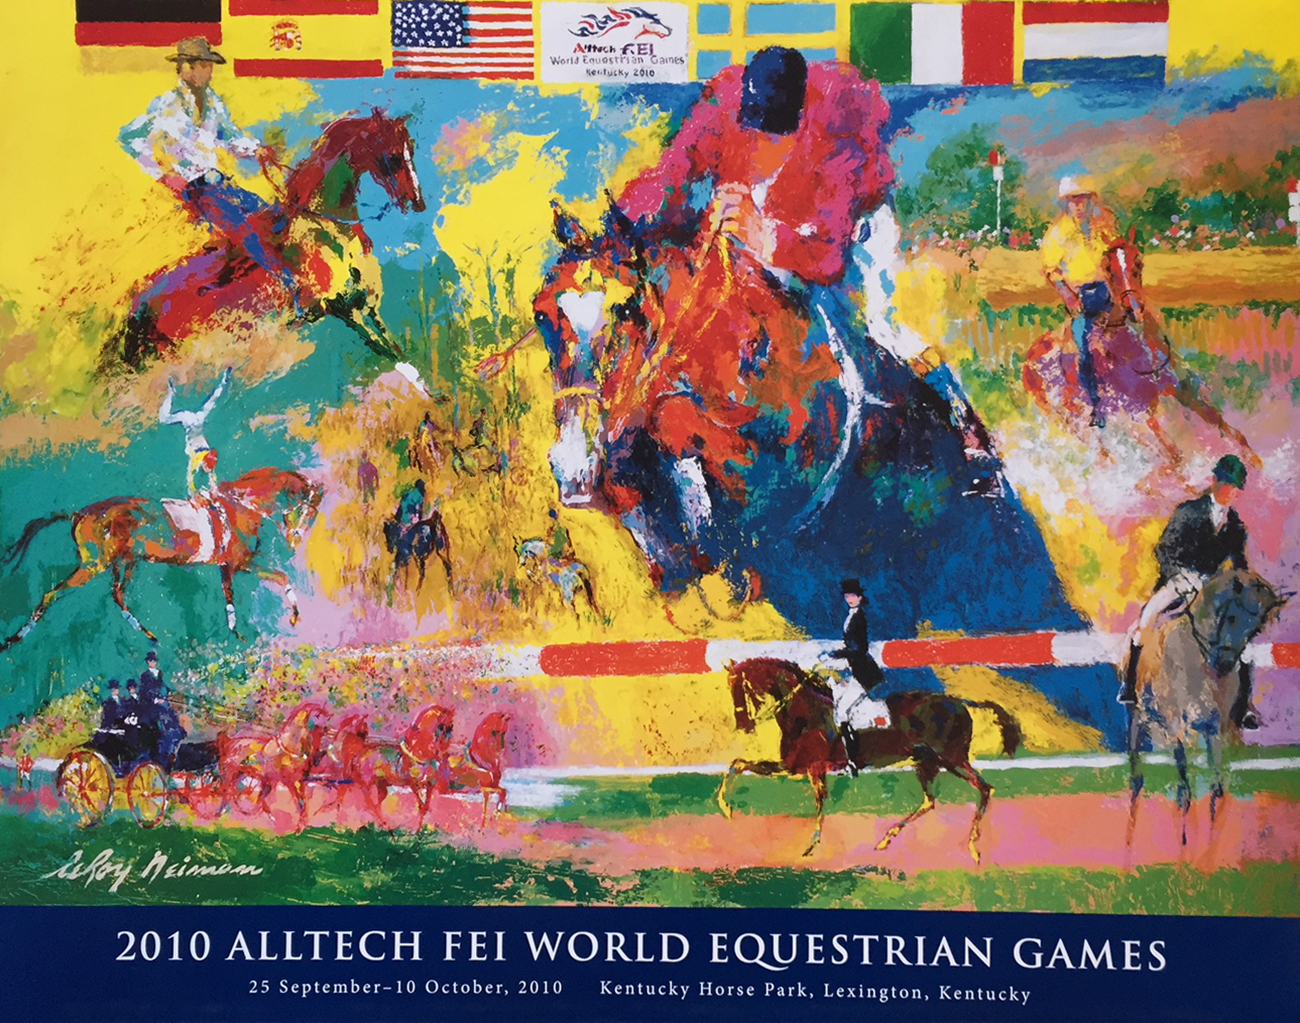 World Equestrian Games poster